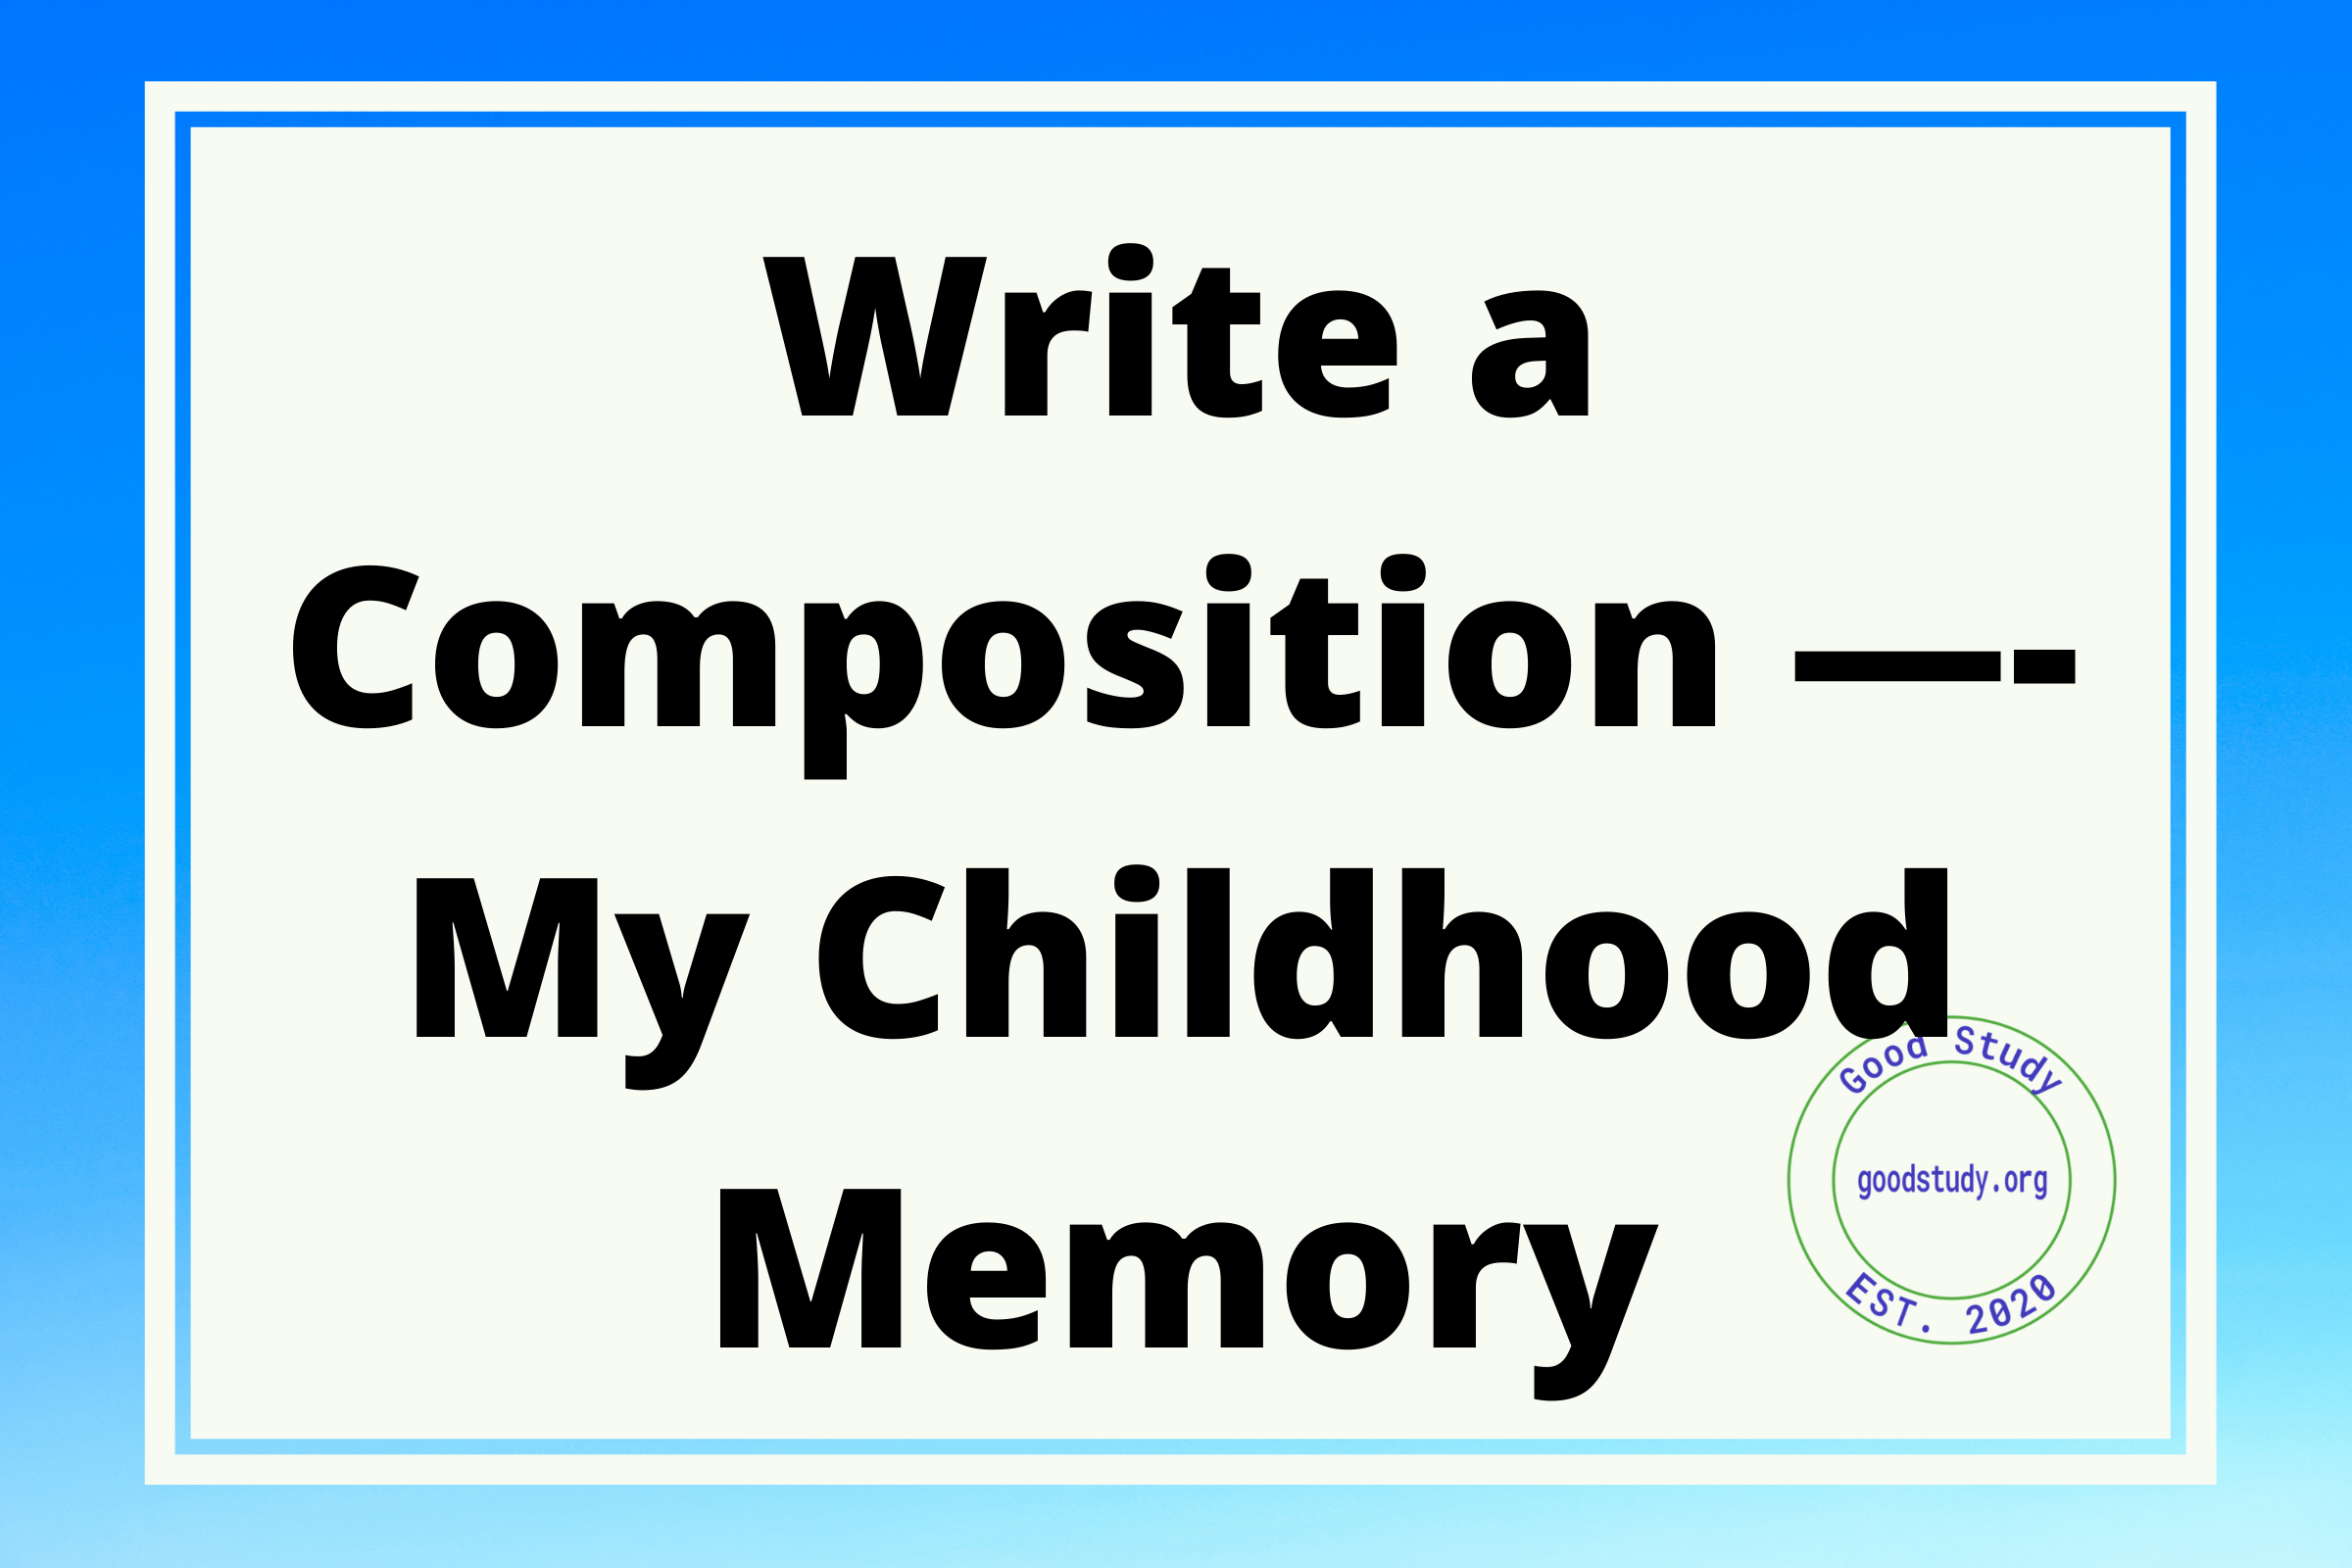 Write a Composition —- My Childhood Memory